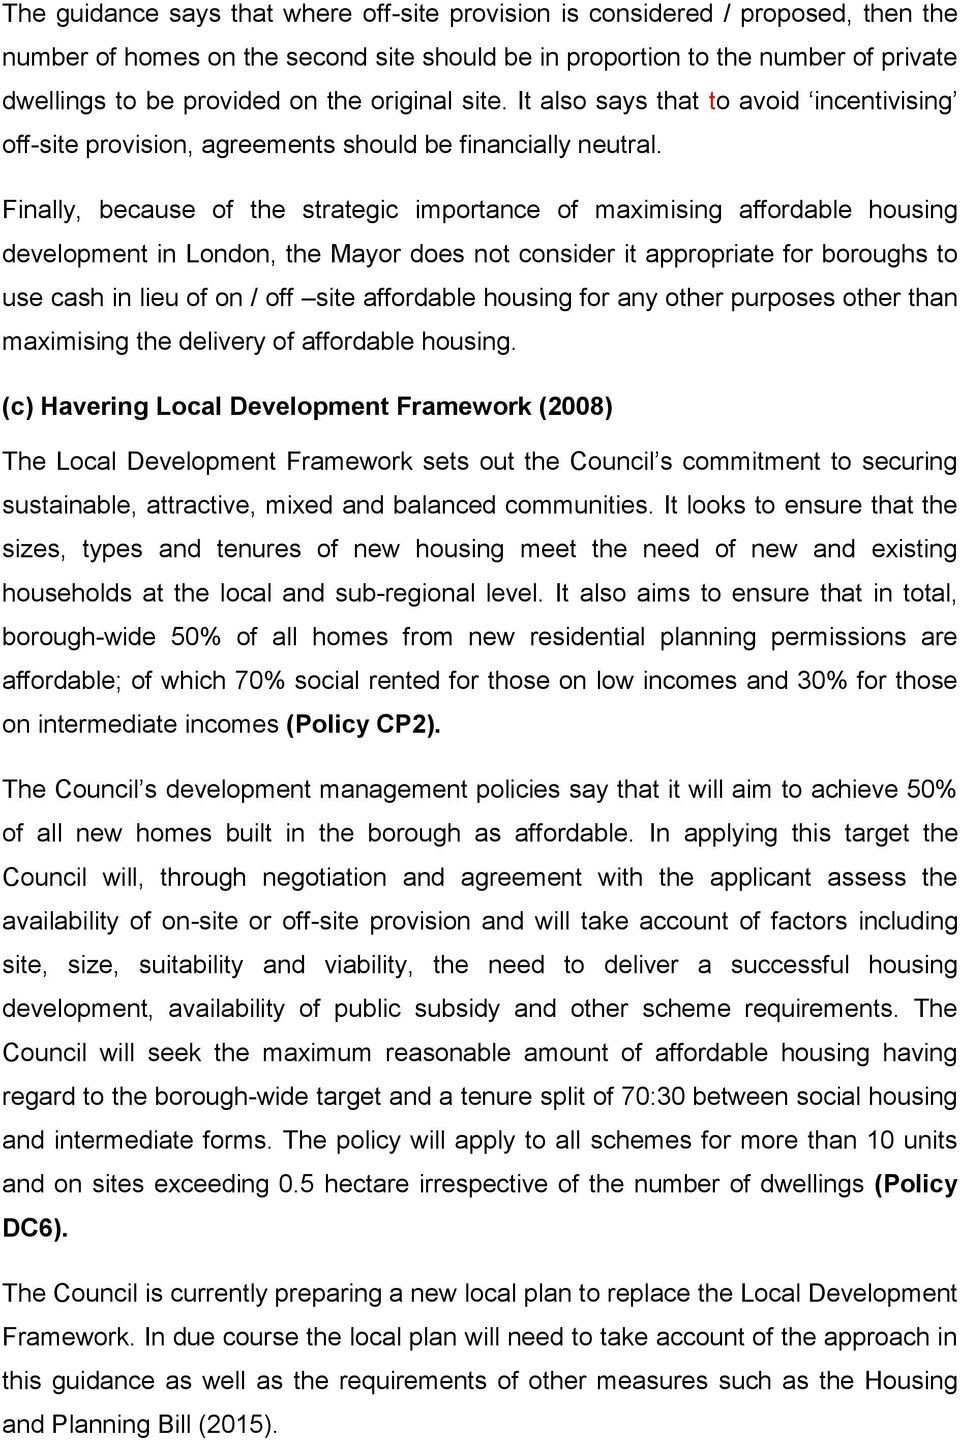 Finally, because of the strategic importance of maximising affordable housing development in London, the Mayor does not consider it appropriate for boroughs to use cash in lieu of on / off site